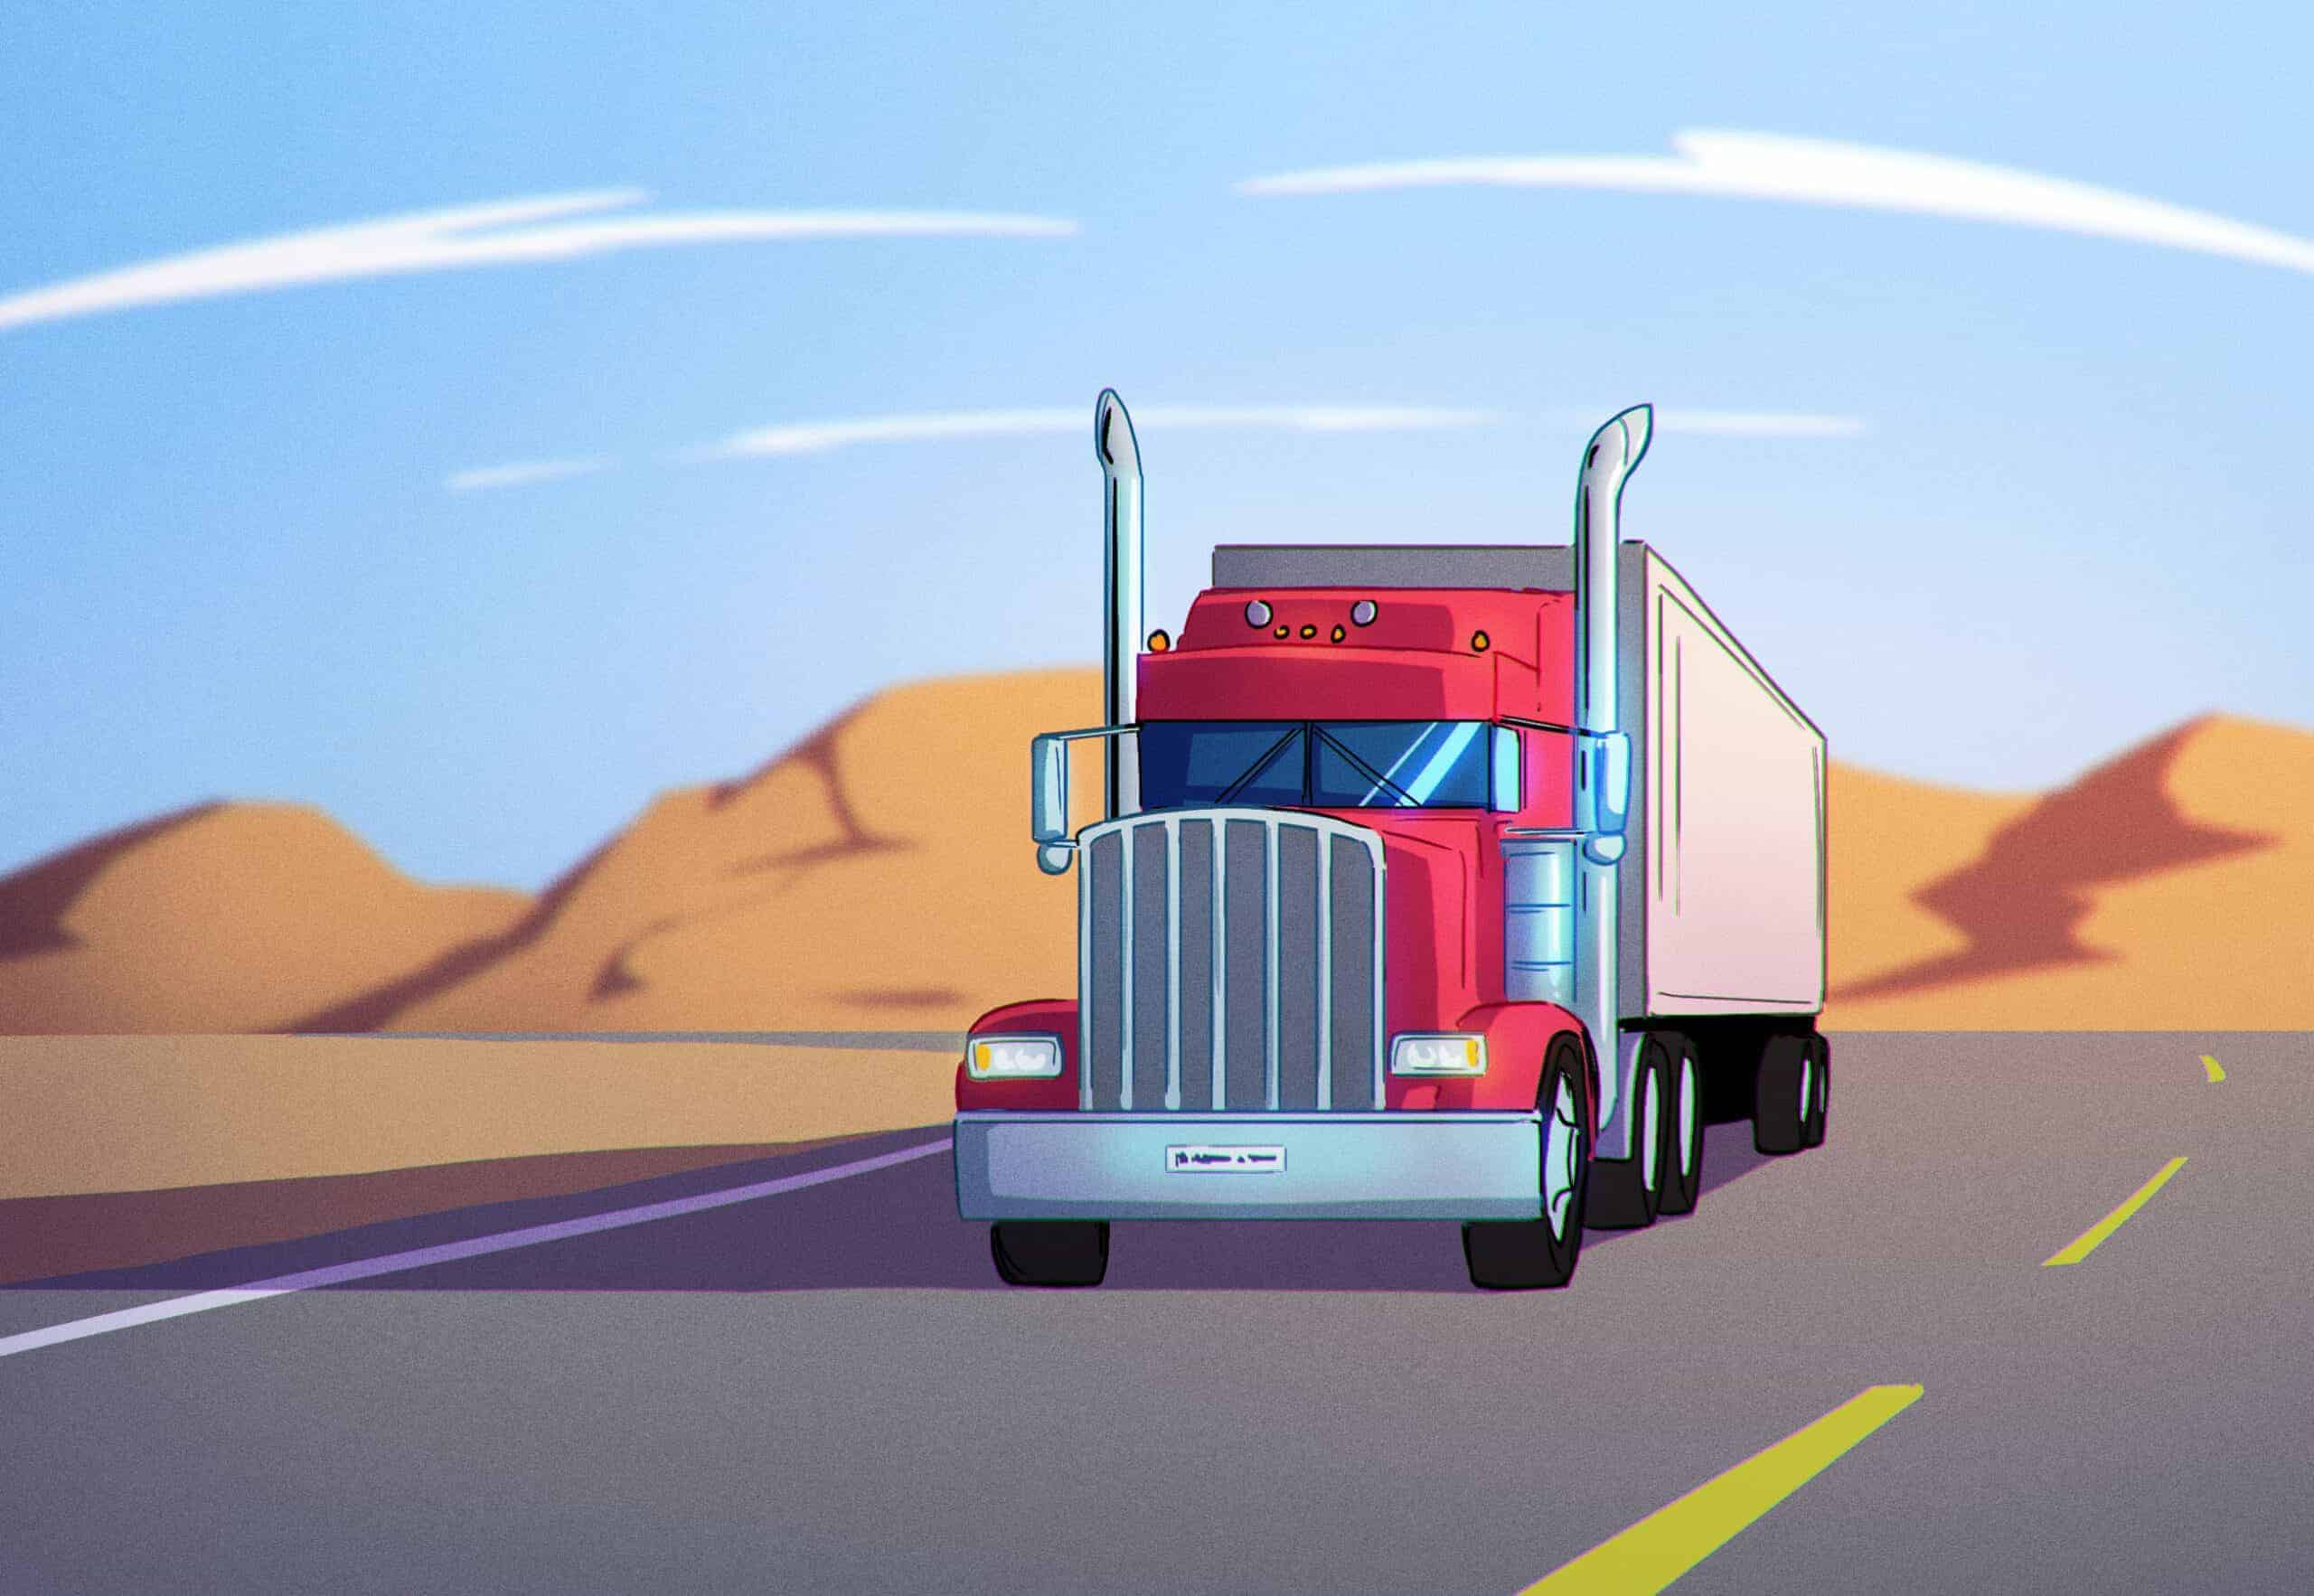 How to Get a Commercial Driver's License (CDL) in 2021